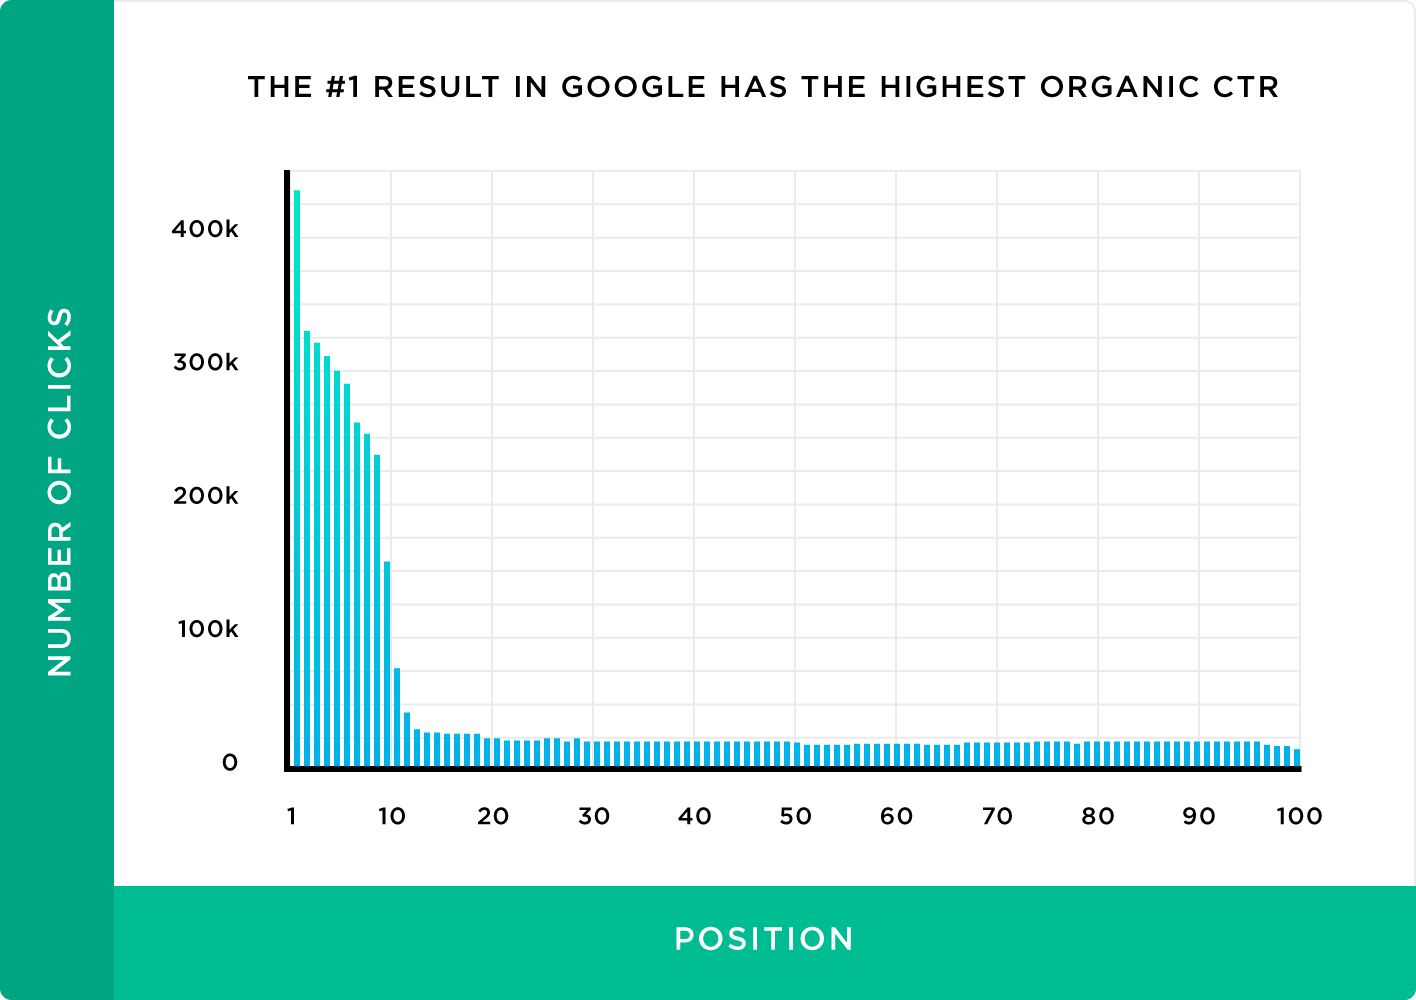 The first result in Google has the highest organic CTR